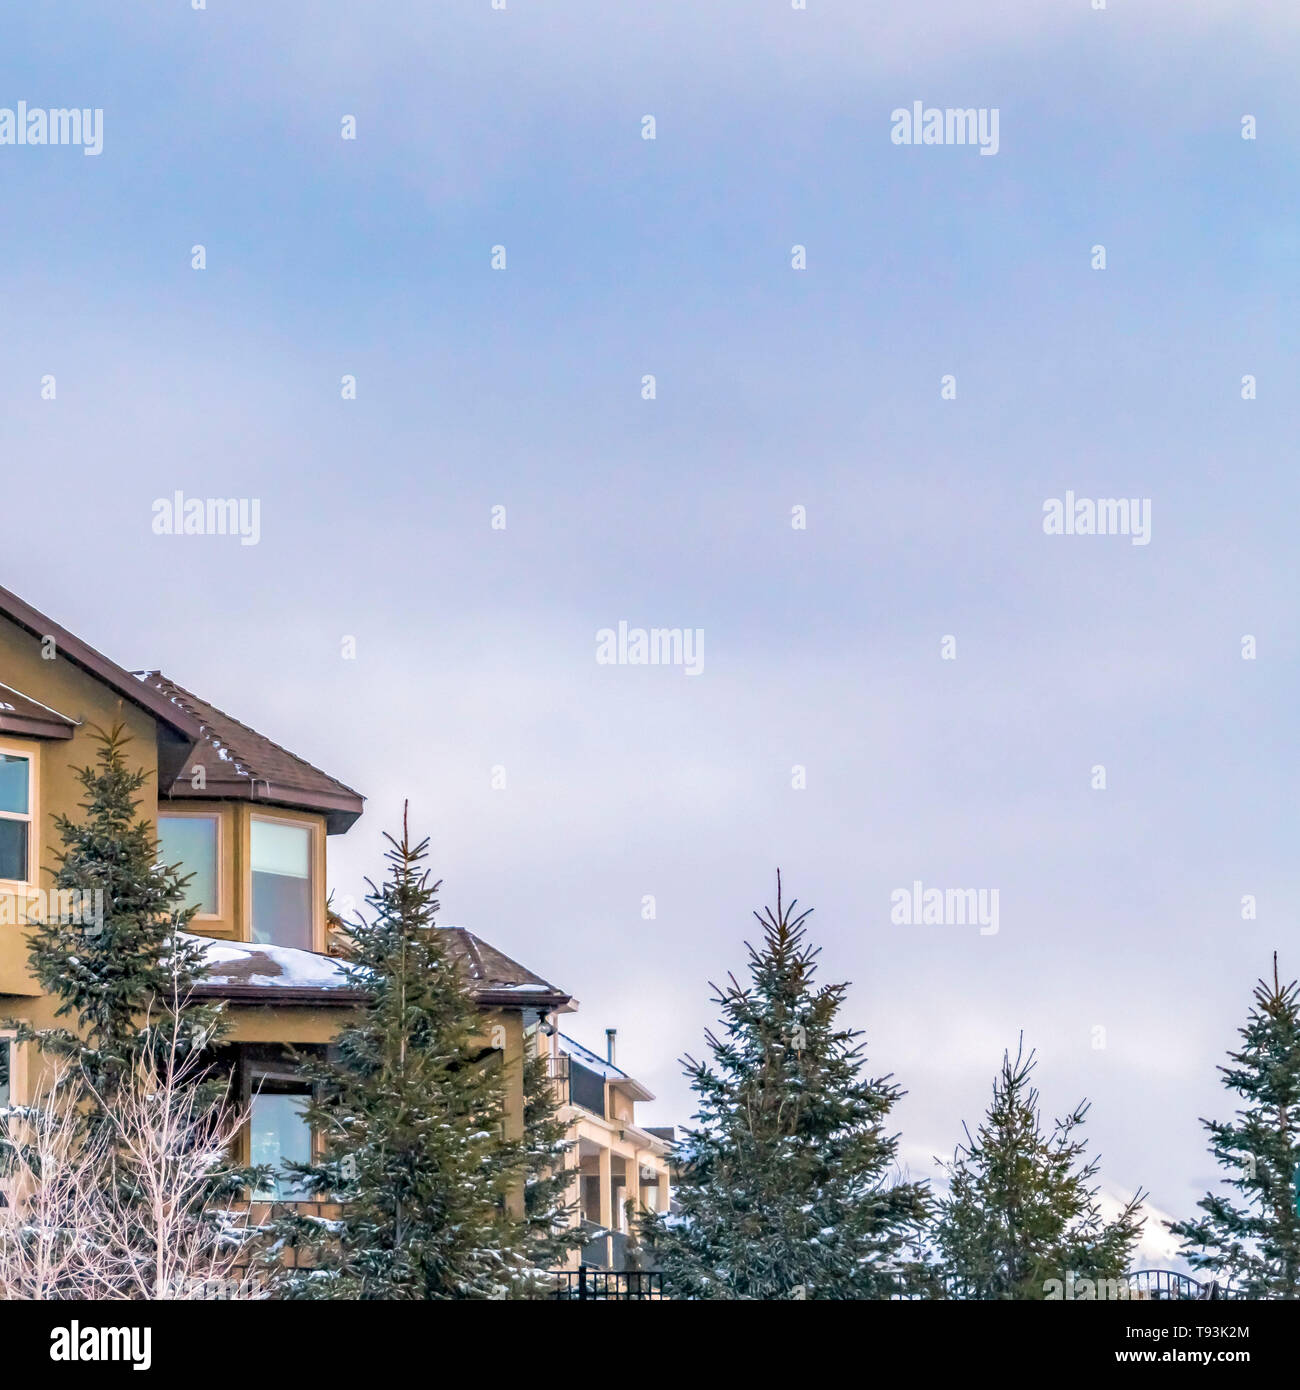 Square Exterior of an elegant house against blue sky with puffy clouds in winter - Stock Image